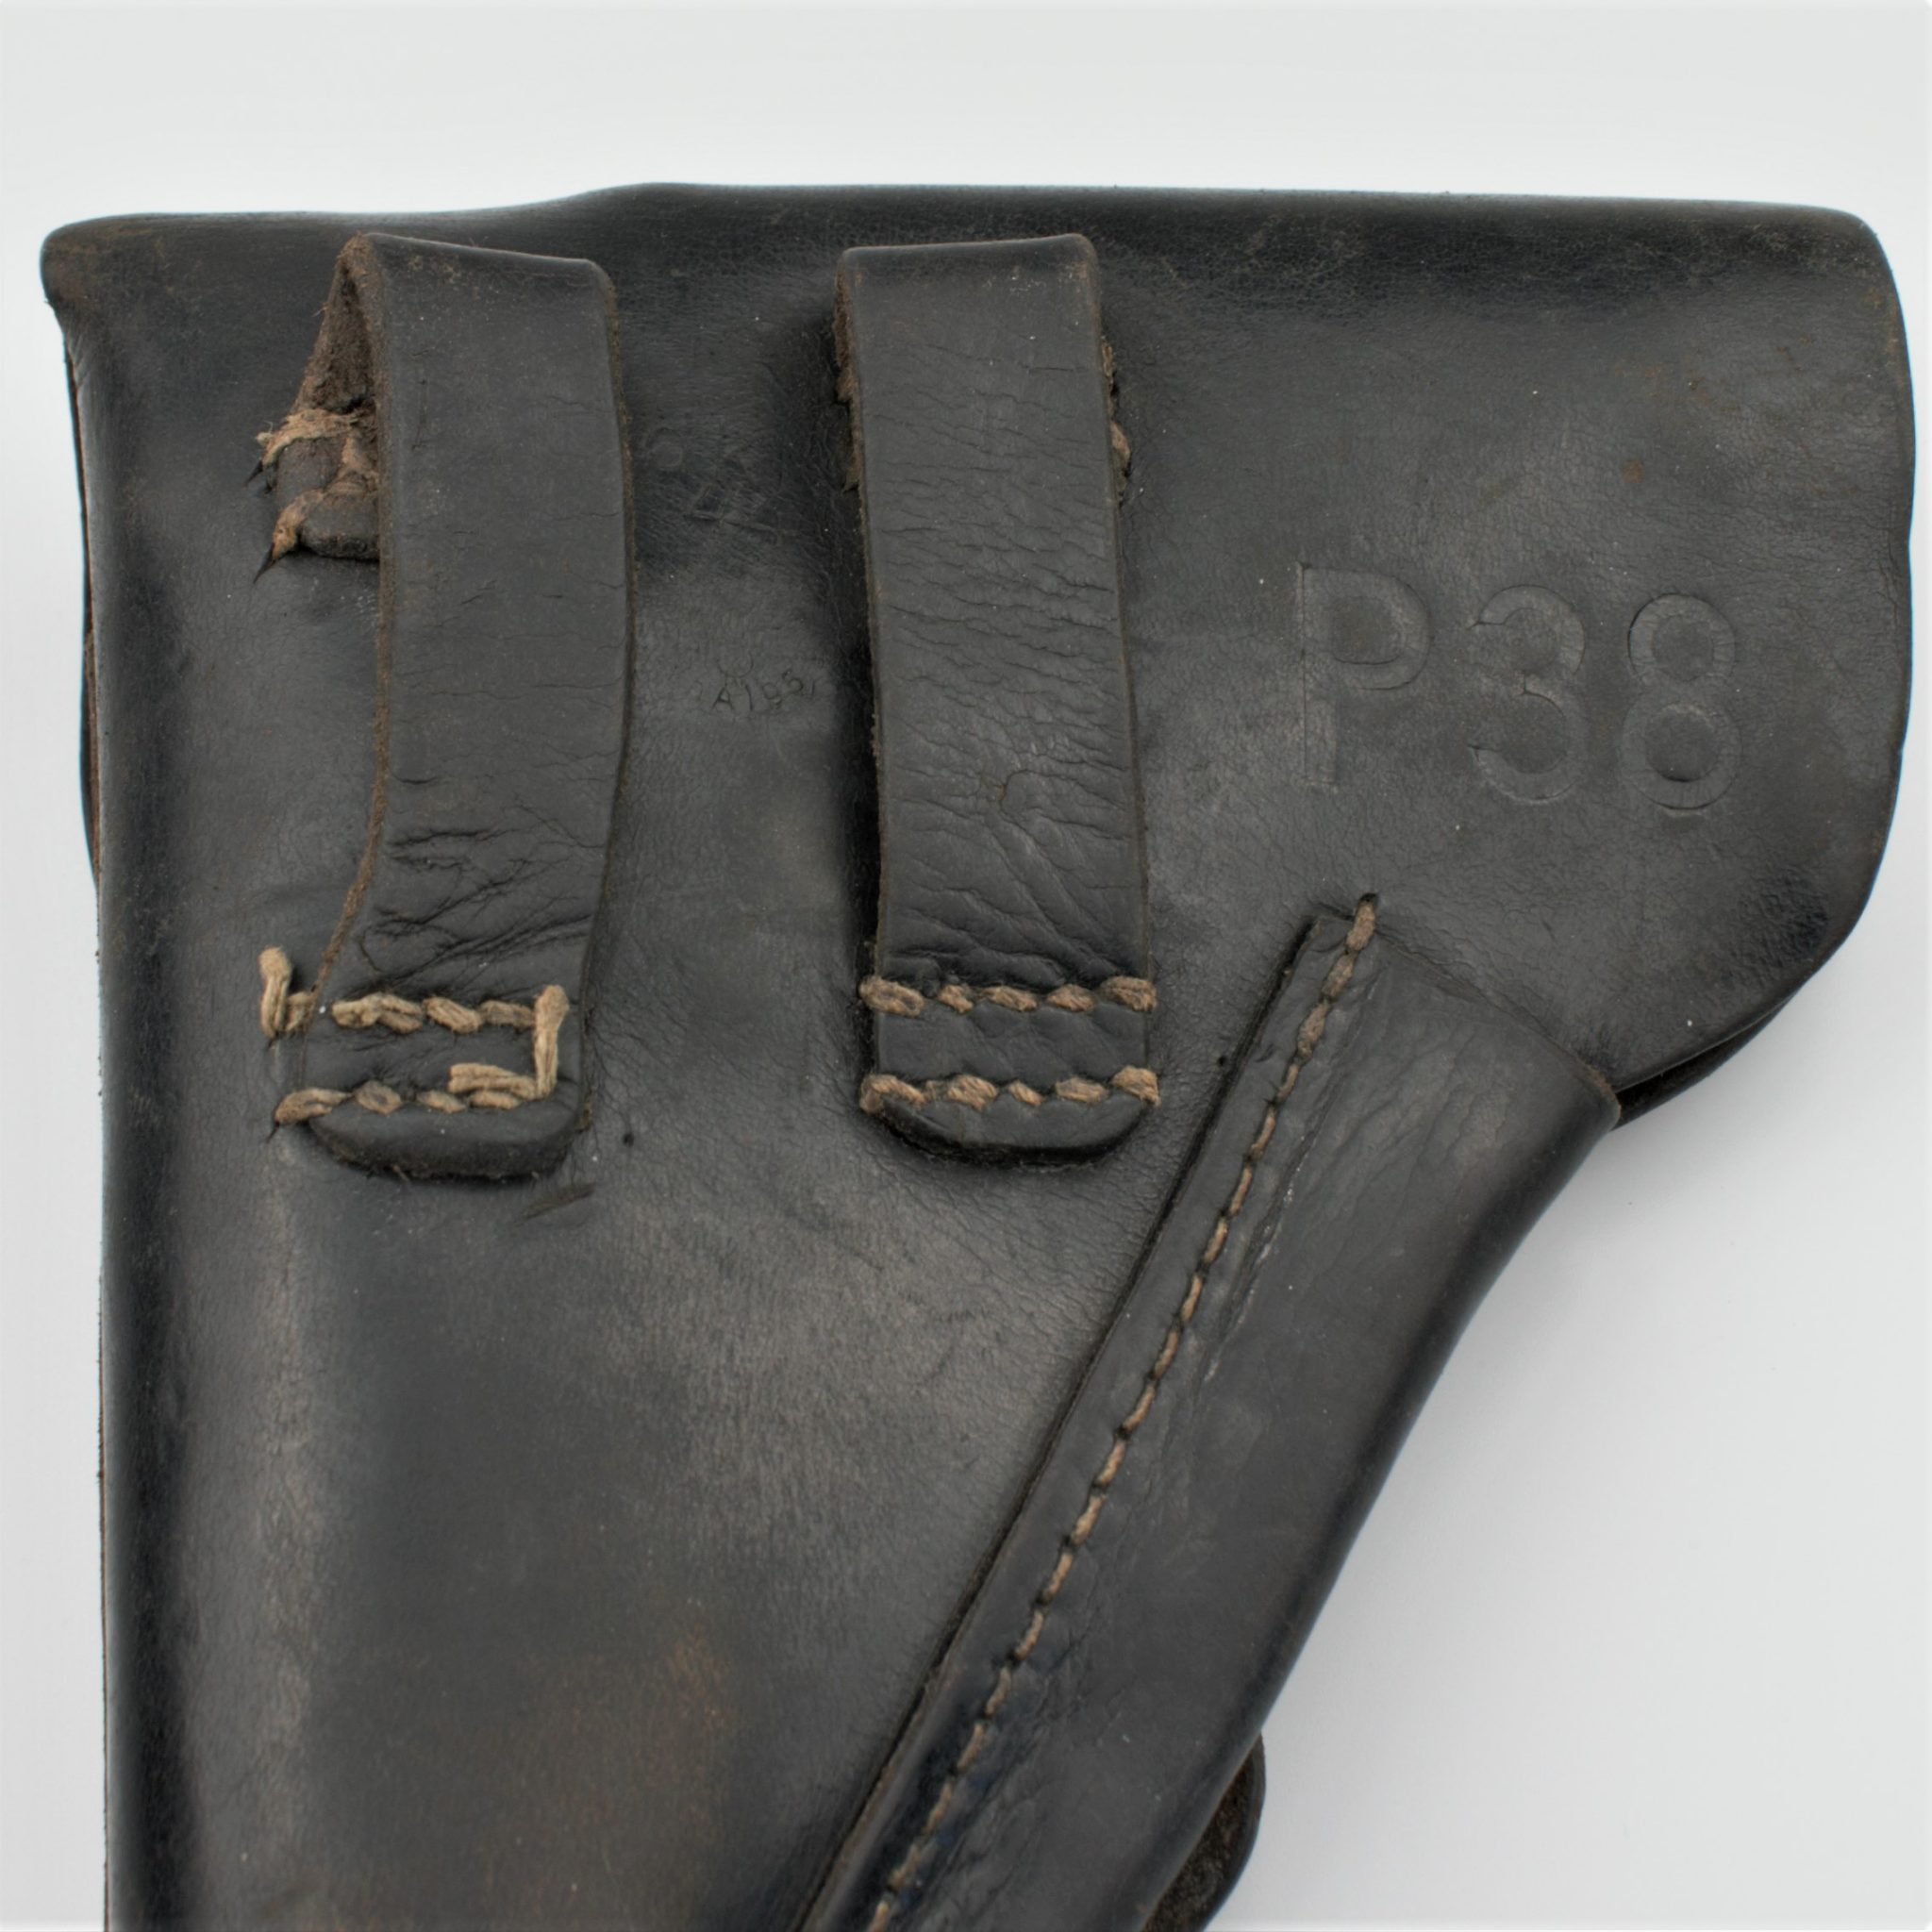 P38 holster - Holding History